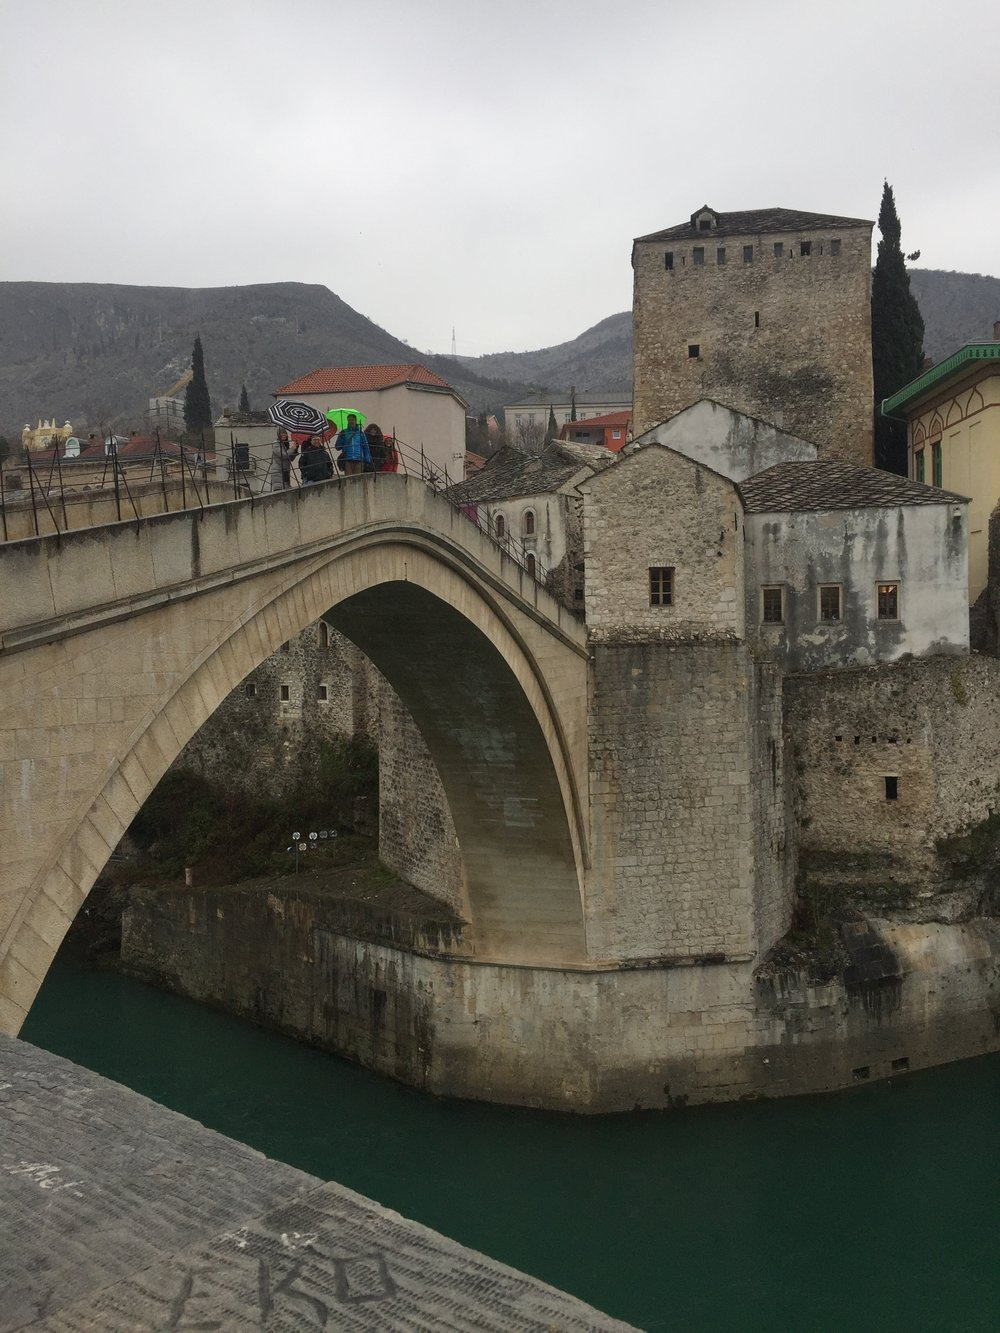 Enjoying Mostar in the rain